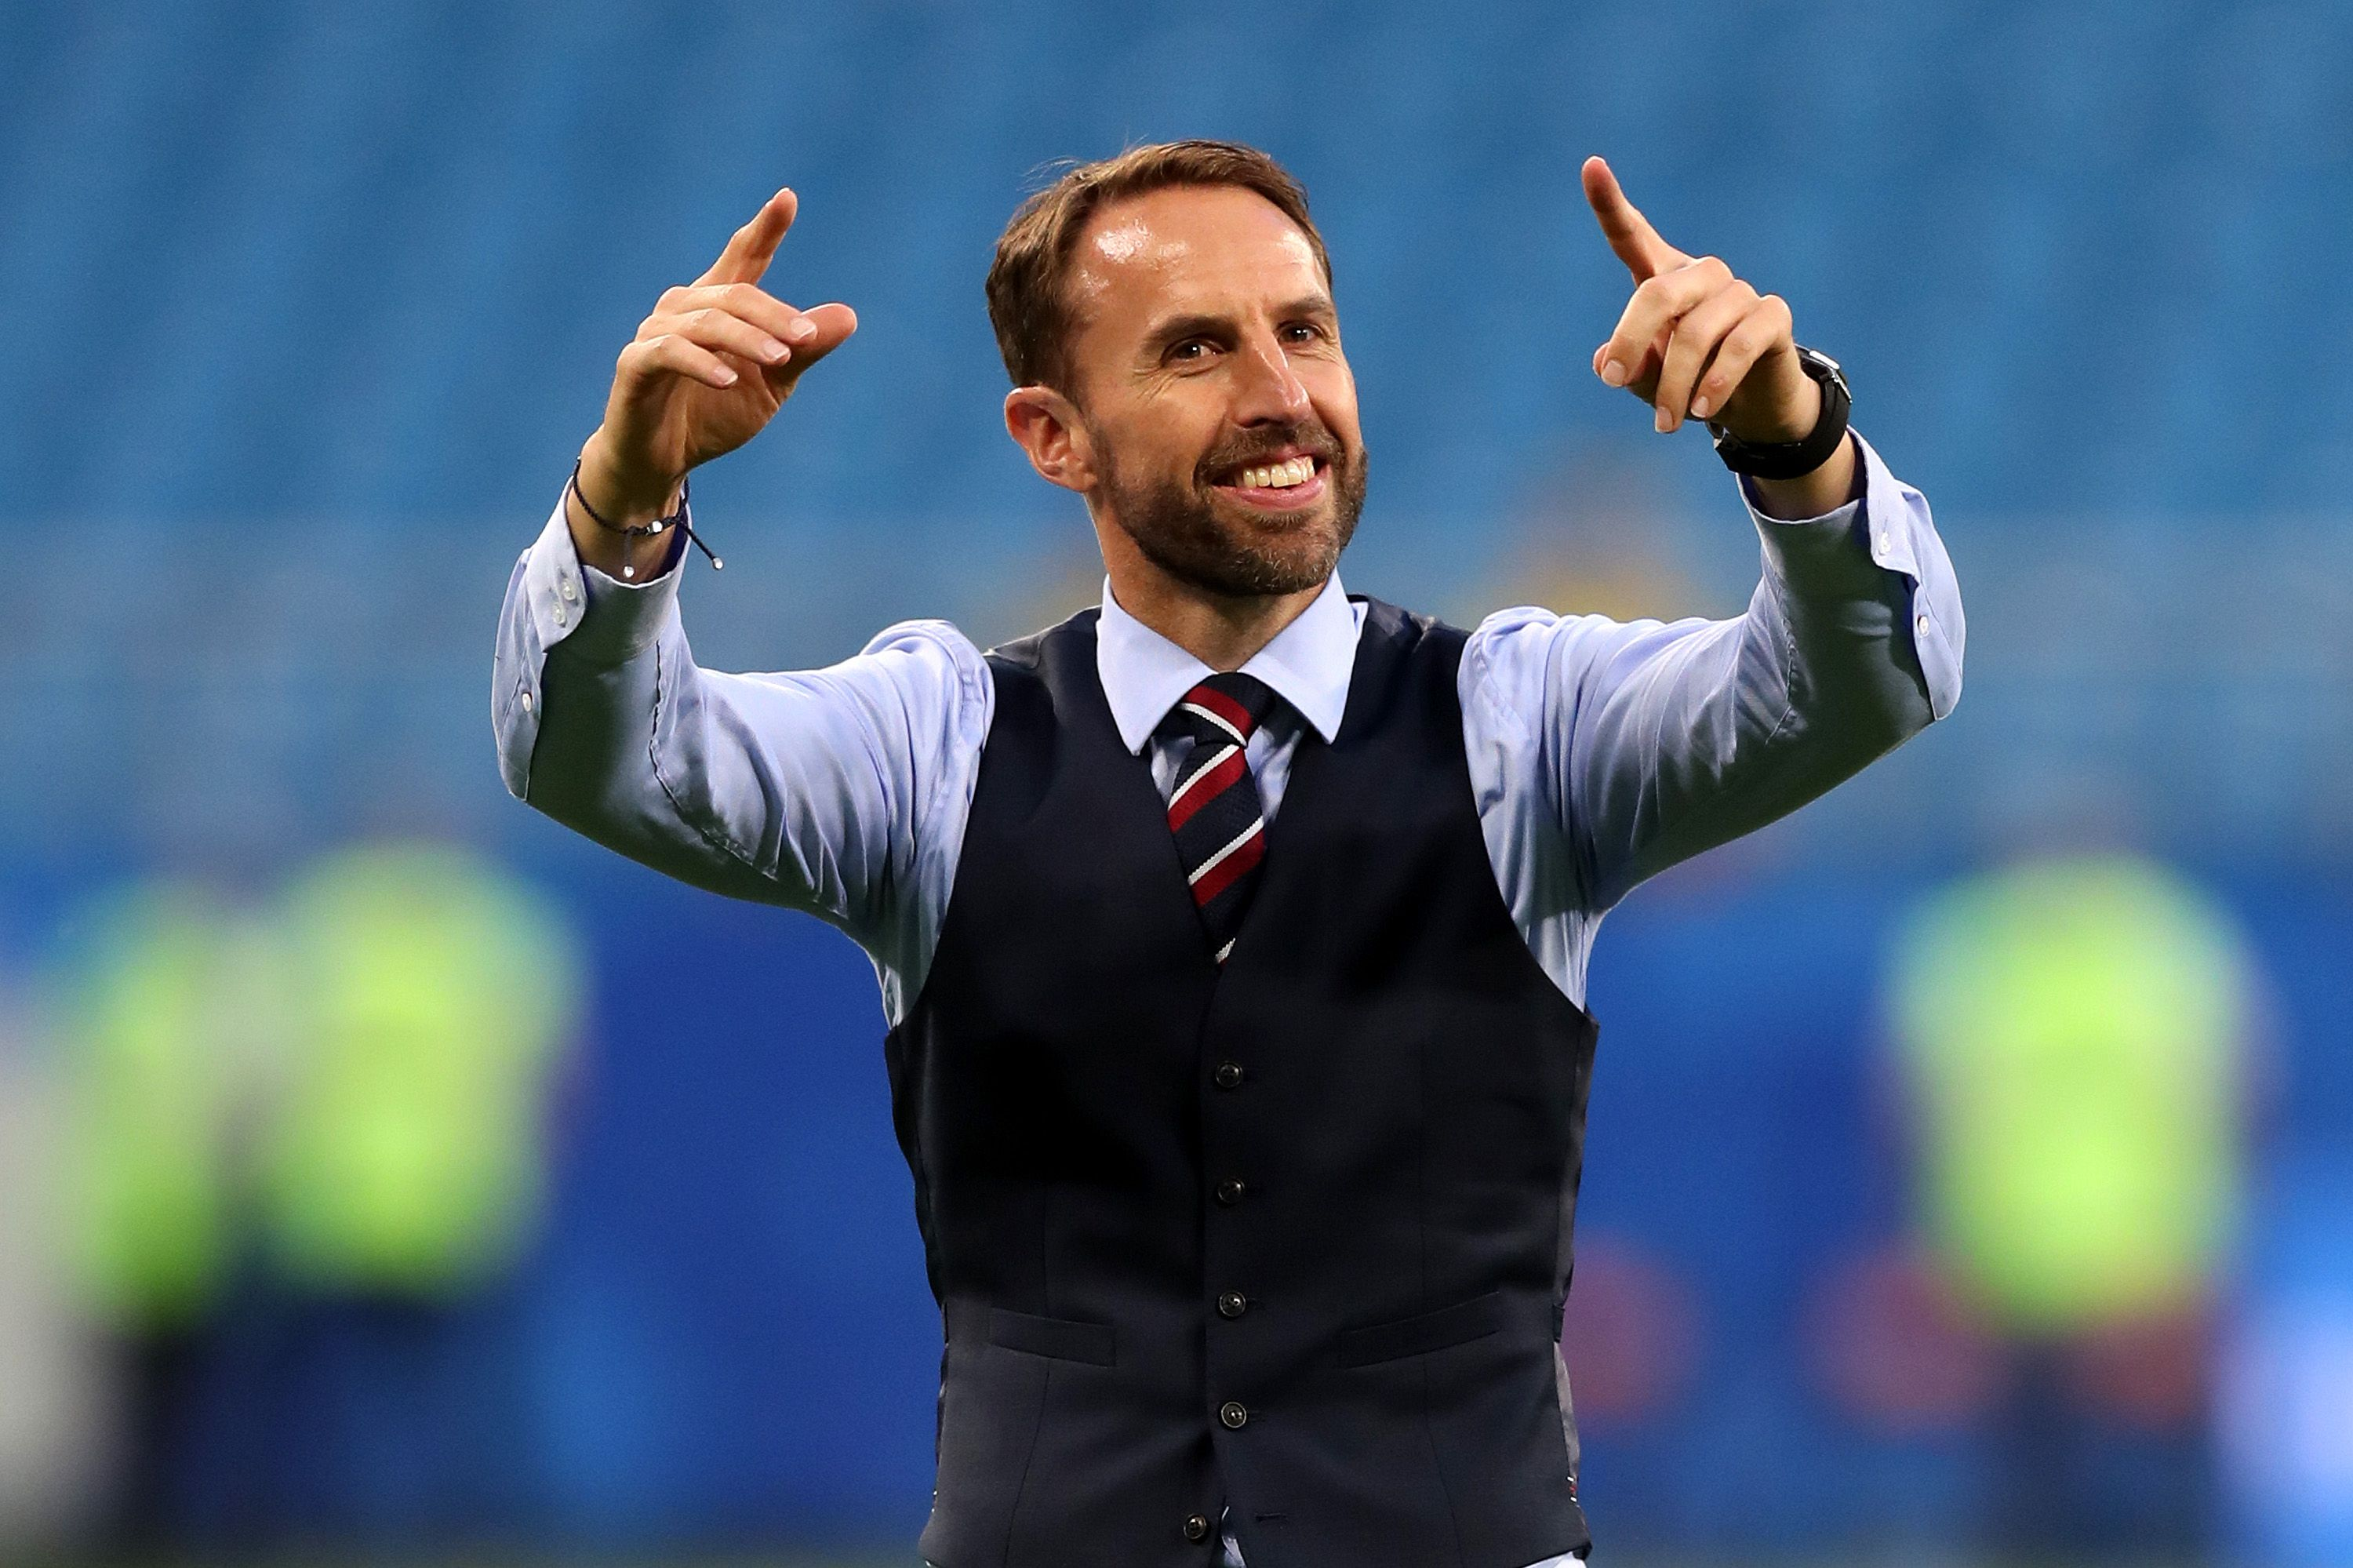 Southgate's England will continue to play cautiously in the Euro 2020